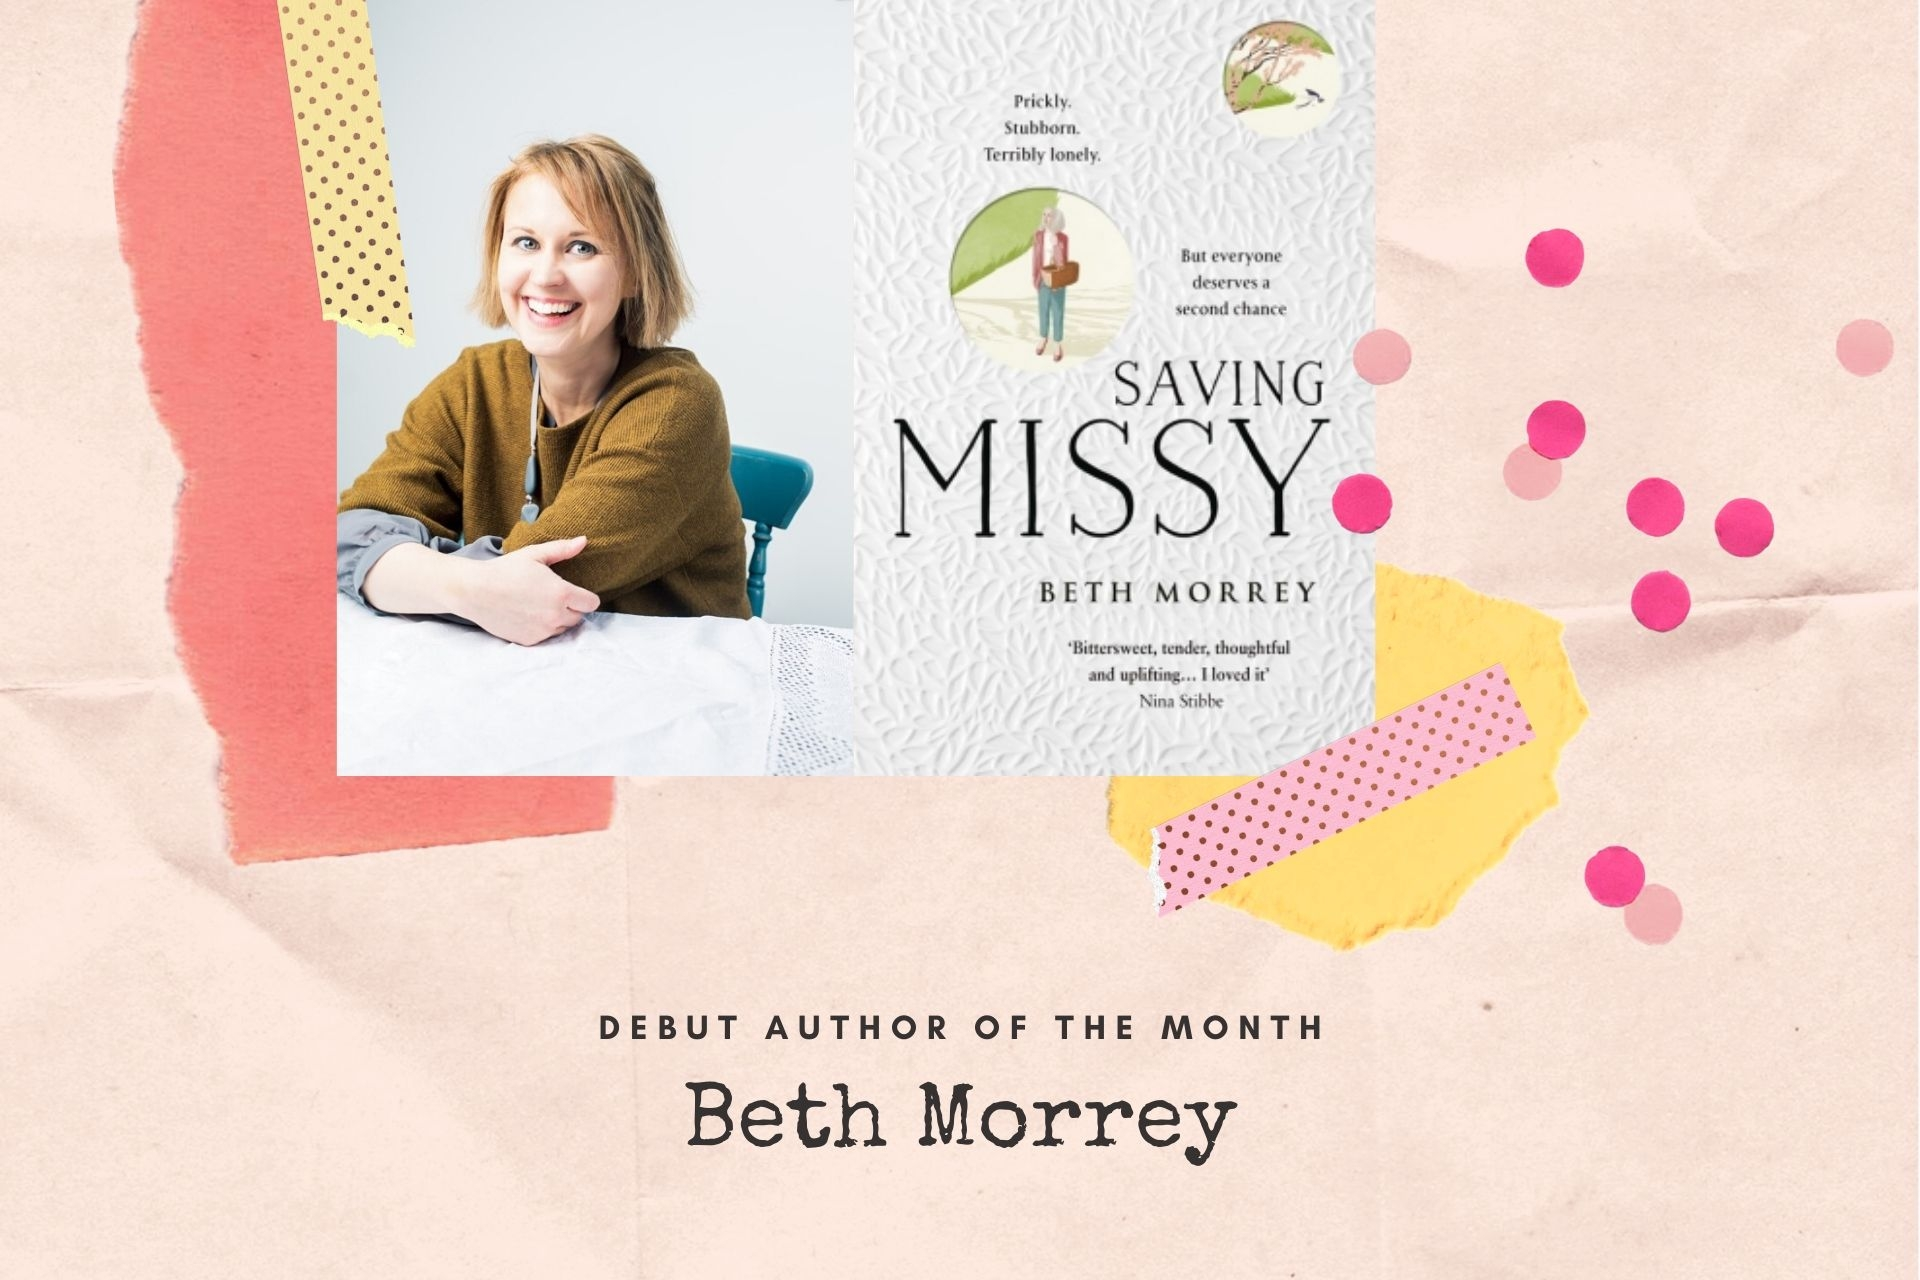 Debut Author of the Month: Beth Morrey, LoveReading Very Short Story Award 2020 Judge